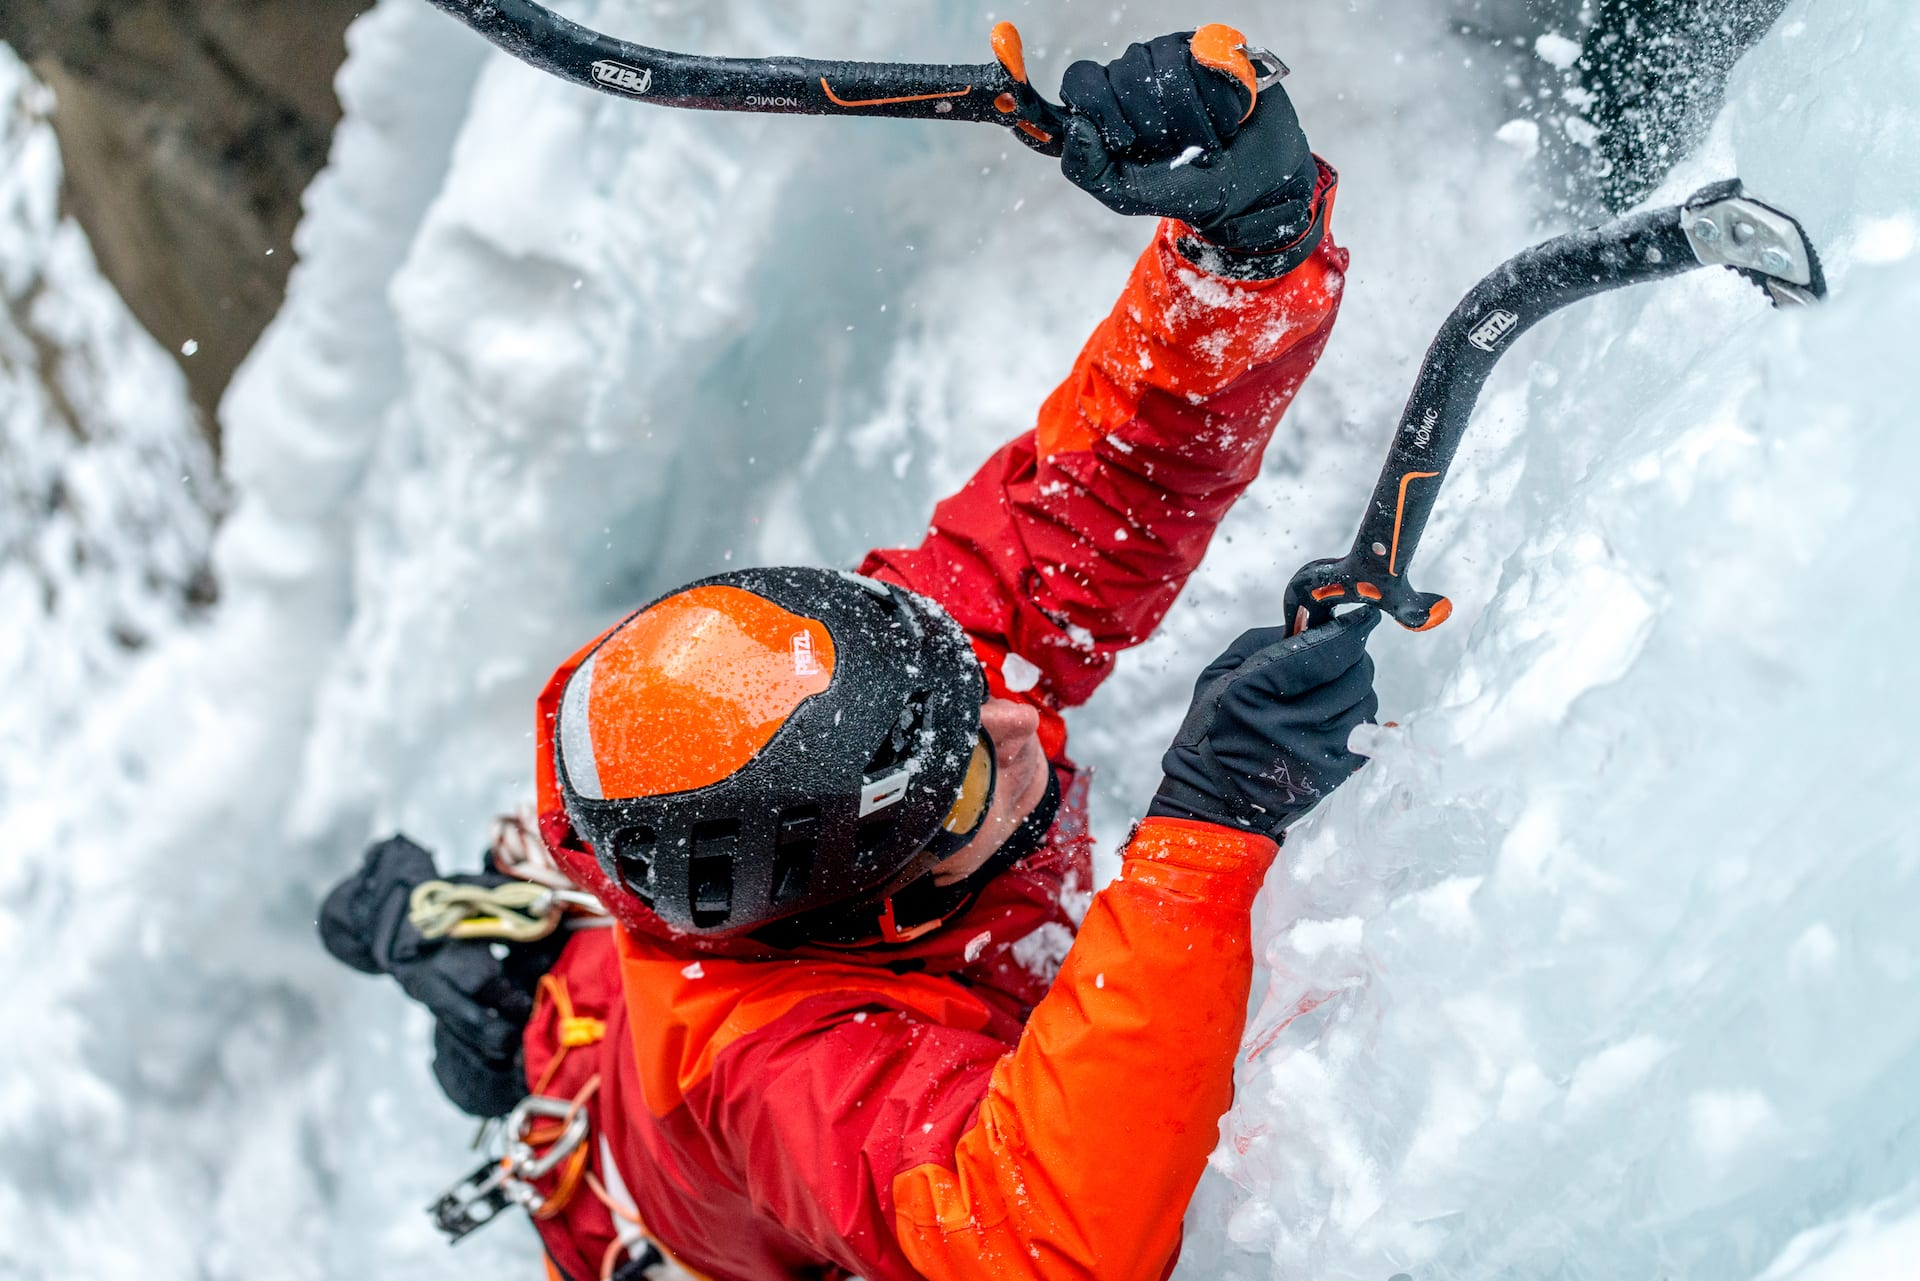 How to Choose the Right Ice Tool this Winter - Rock and Ice